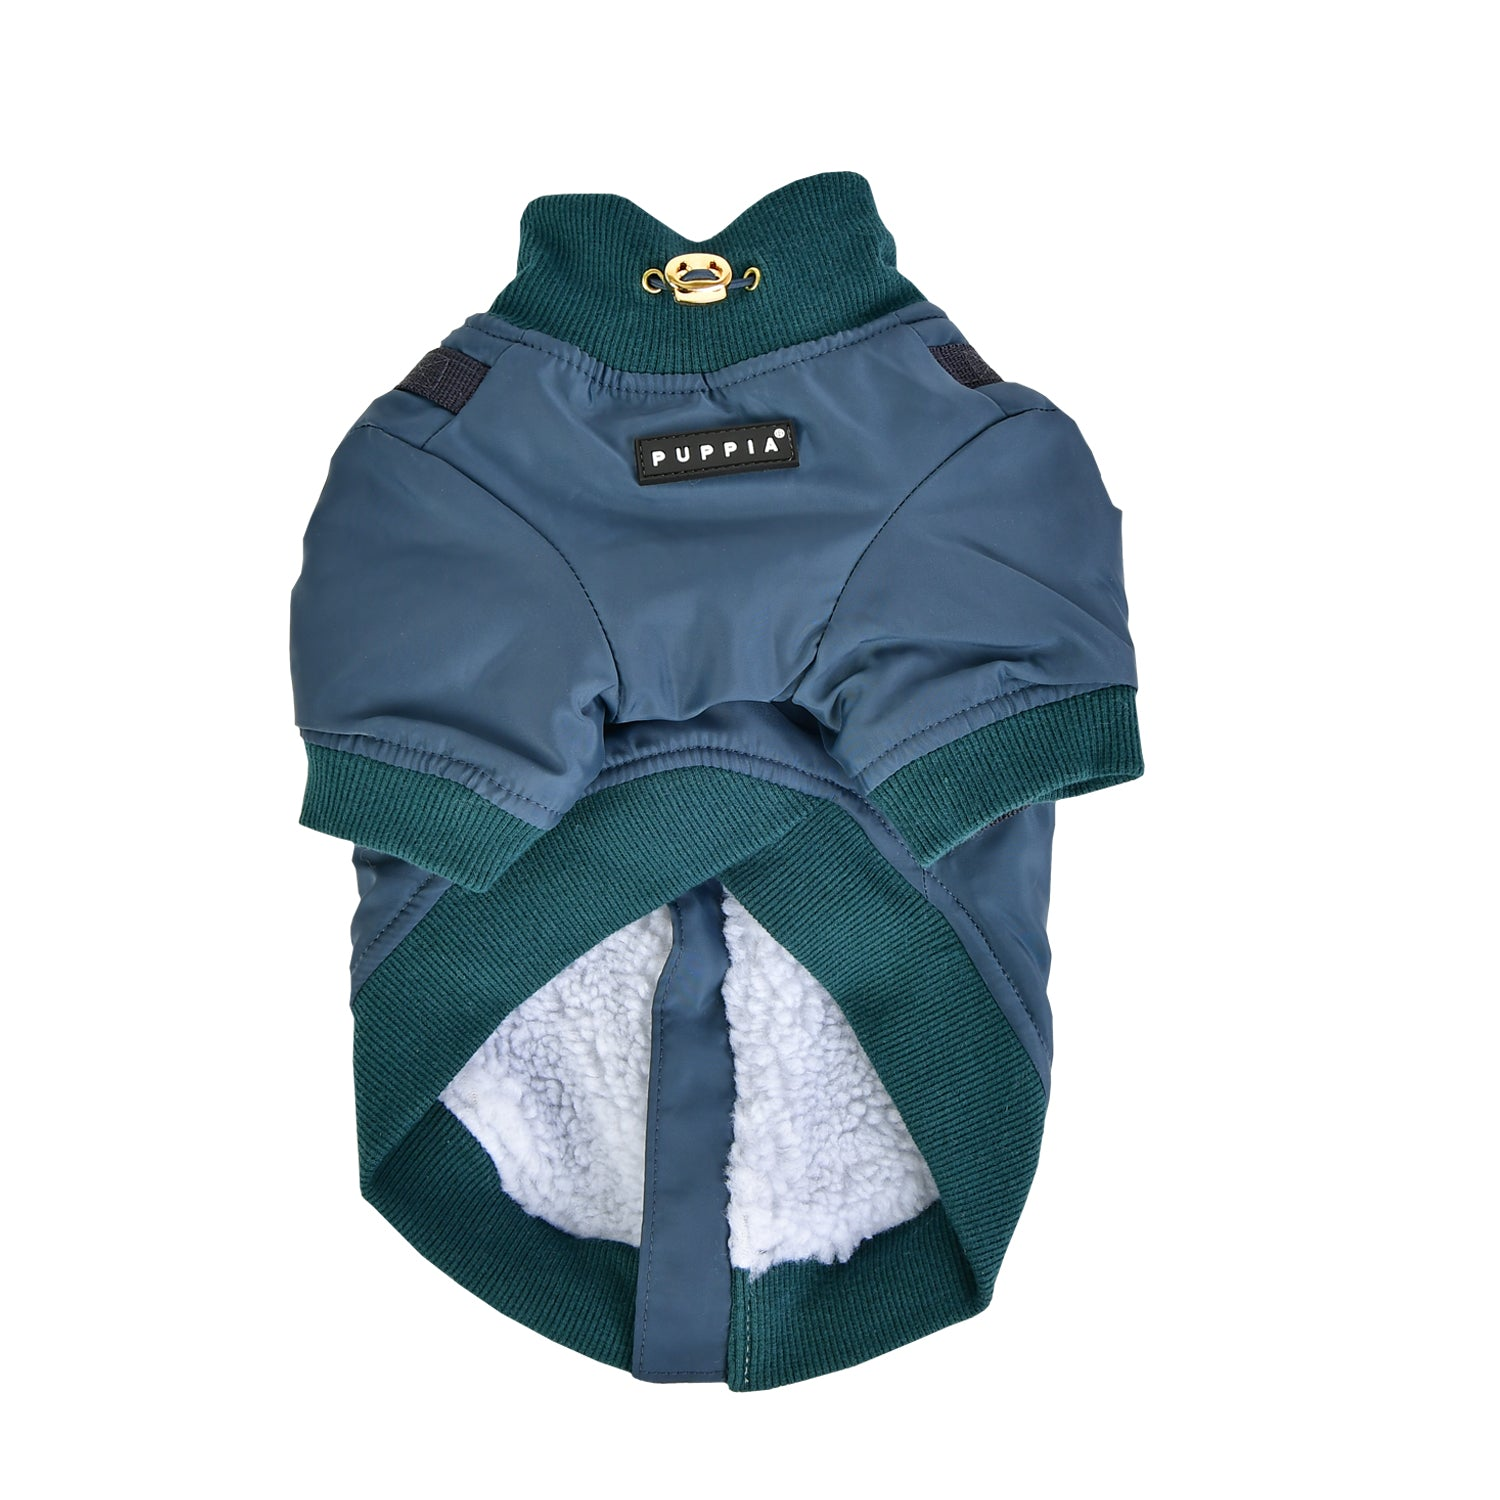 Puppia Coat Dominic Dark Teal